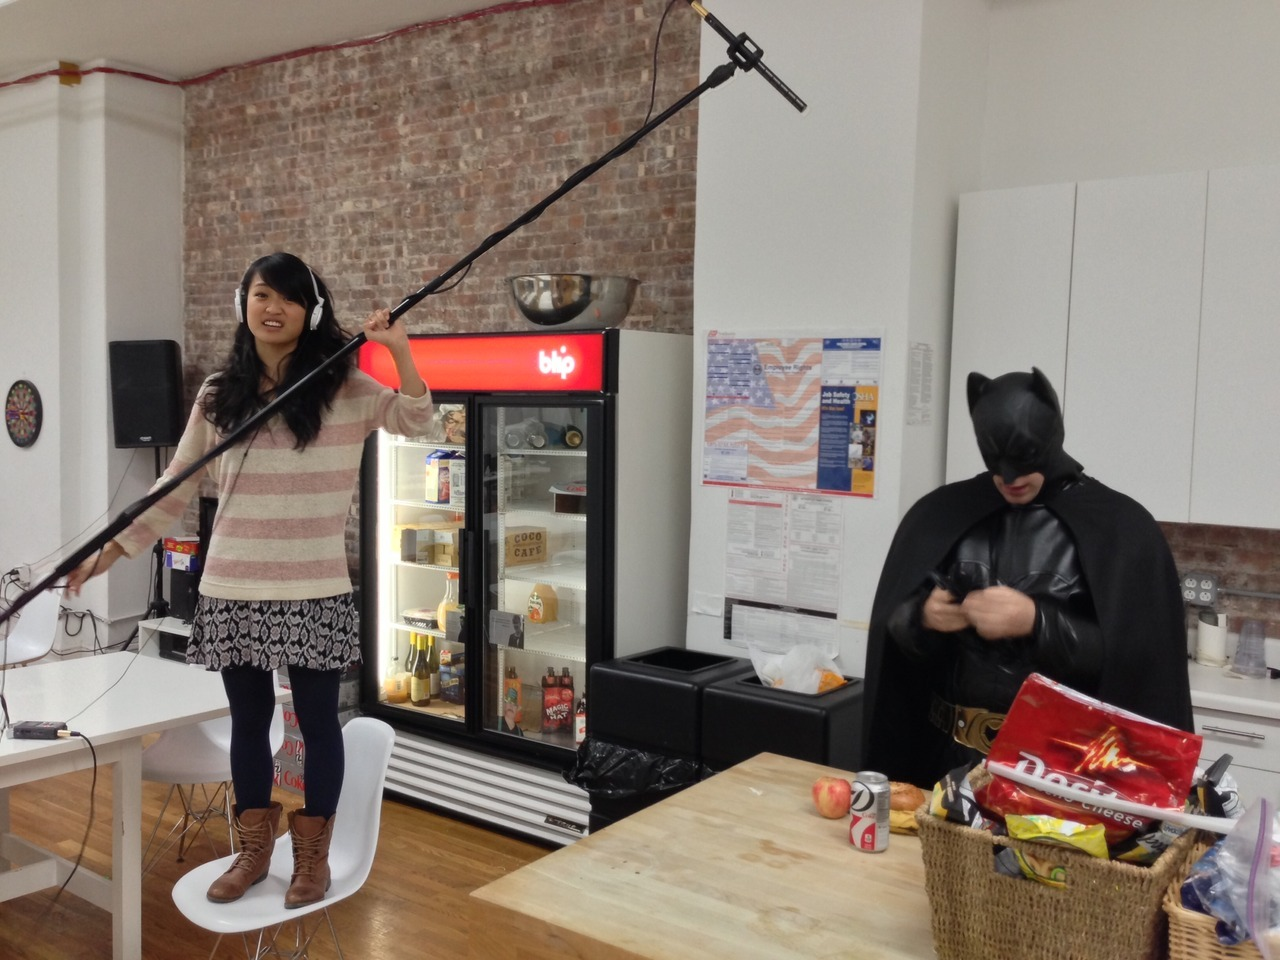 annieisms:  This one time, Batman came by and shot a segment for The Show You're Watching. We were short one on our crew that night so I stepped in as pinch-hitter boom operator. Unfortunately, I'm not very tall.  So that happened last month. You know what else happened? The last episode of The Show You're Watching we shot just before Hurricane Sandy got trapped in Brandon's apartment, which was inaccessible due to flooding. Brandon was able to get back in over the weekend and finish editing (our hero!) so tomorrow you'll get our belated episode. Fear not, children… soon!